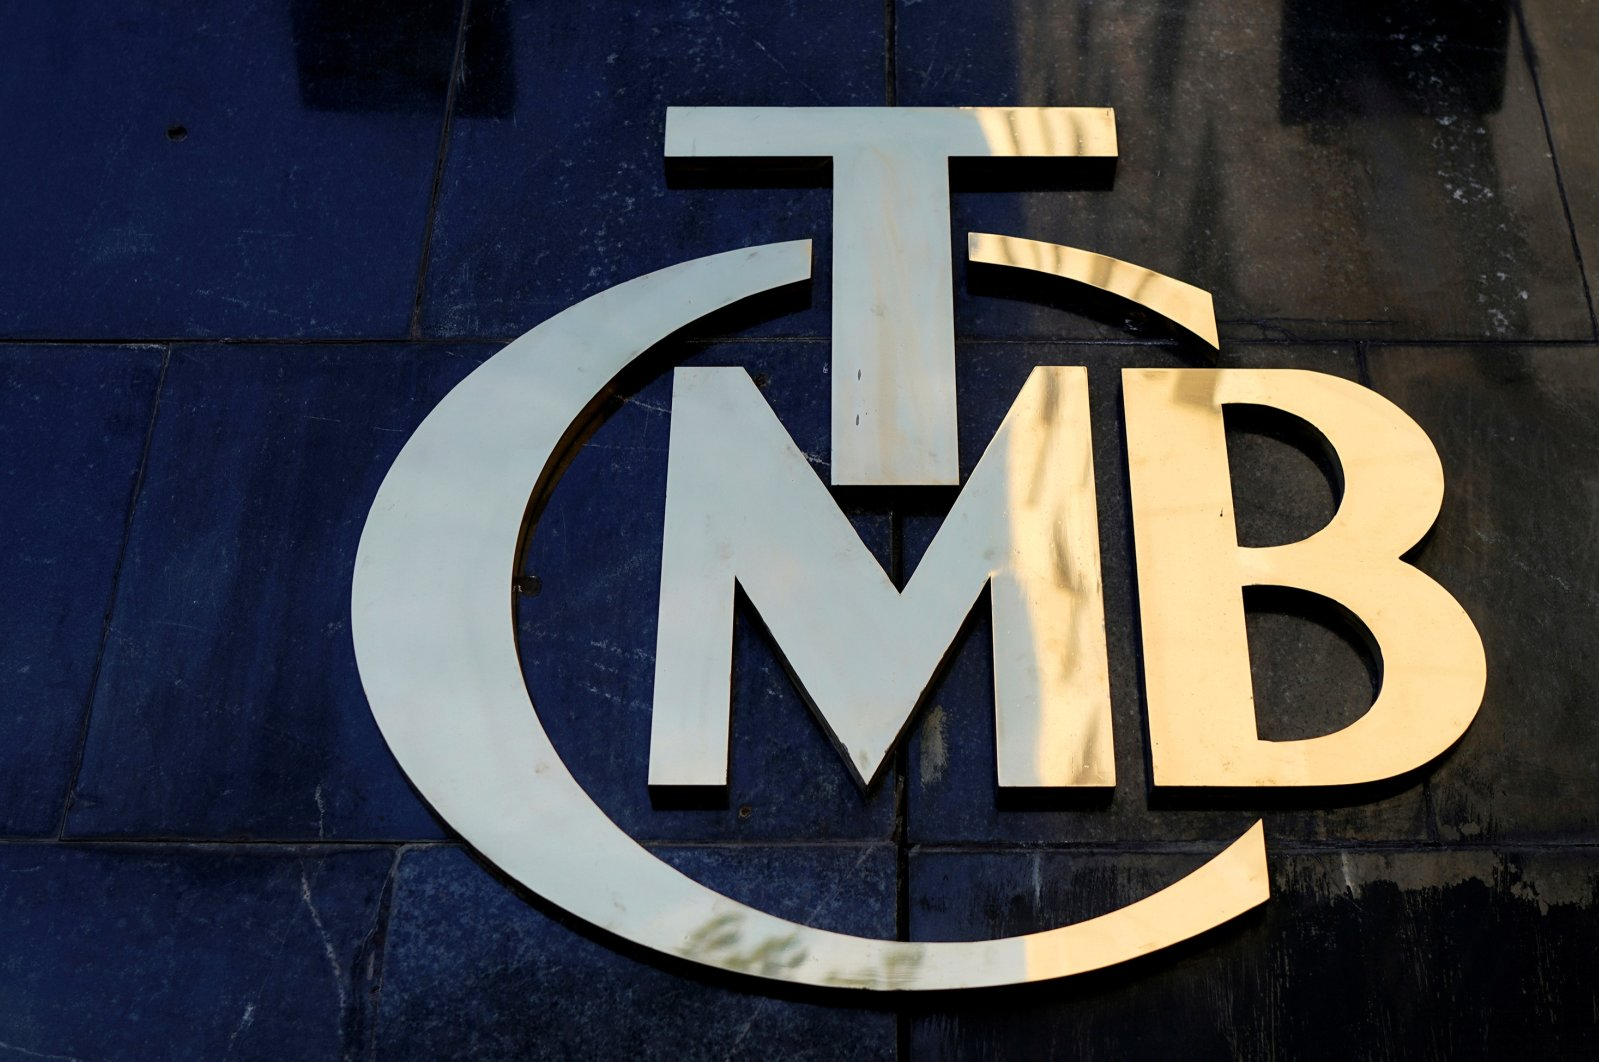 The logo of the Central Bank of the Republic of Turkey (CBRT) is pictured at the entrance of the bank's headquarters in Ankara, Turkey, April 19, 2015. (Reuters Photo)